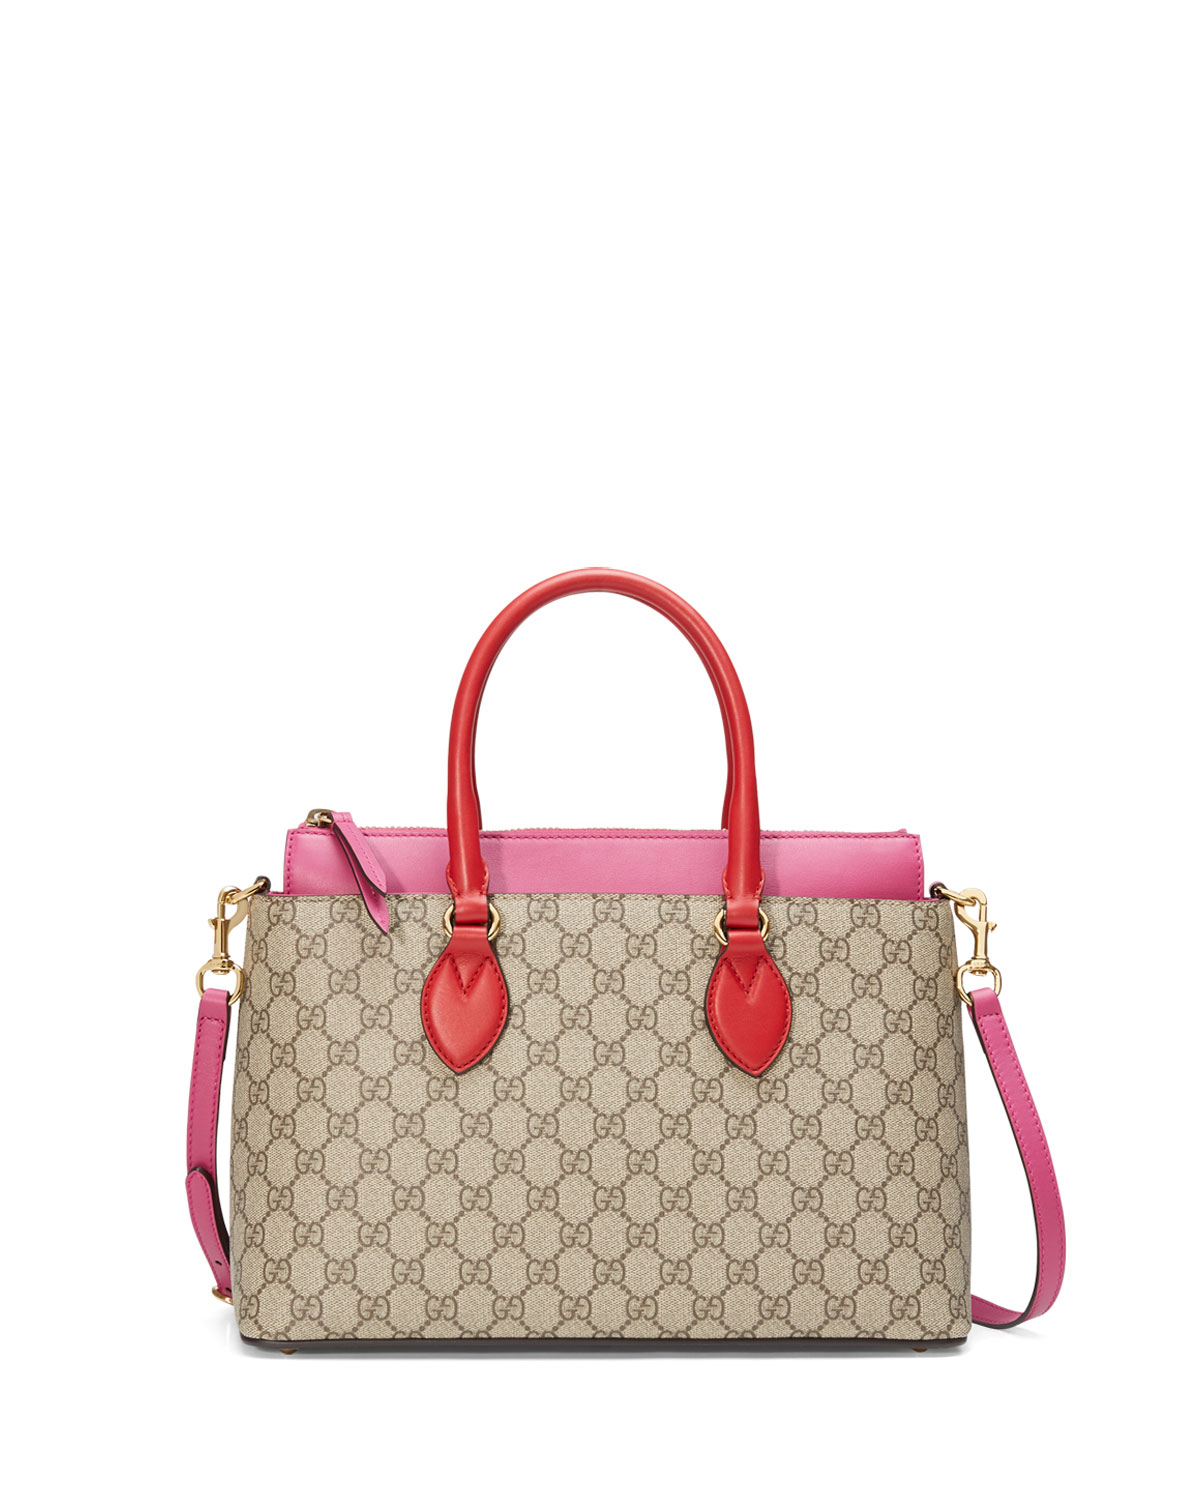 5cd765d1bafd Gucci GG Supreme Small Tote Bag, Red/Pink | Neiman Marcus